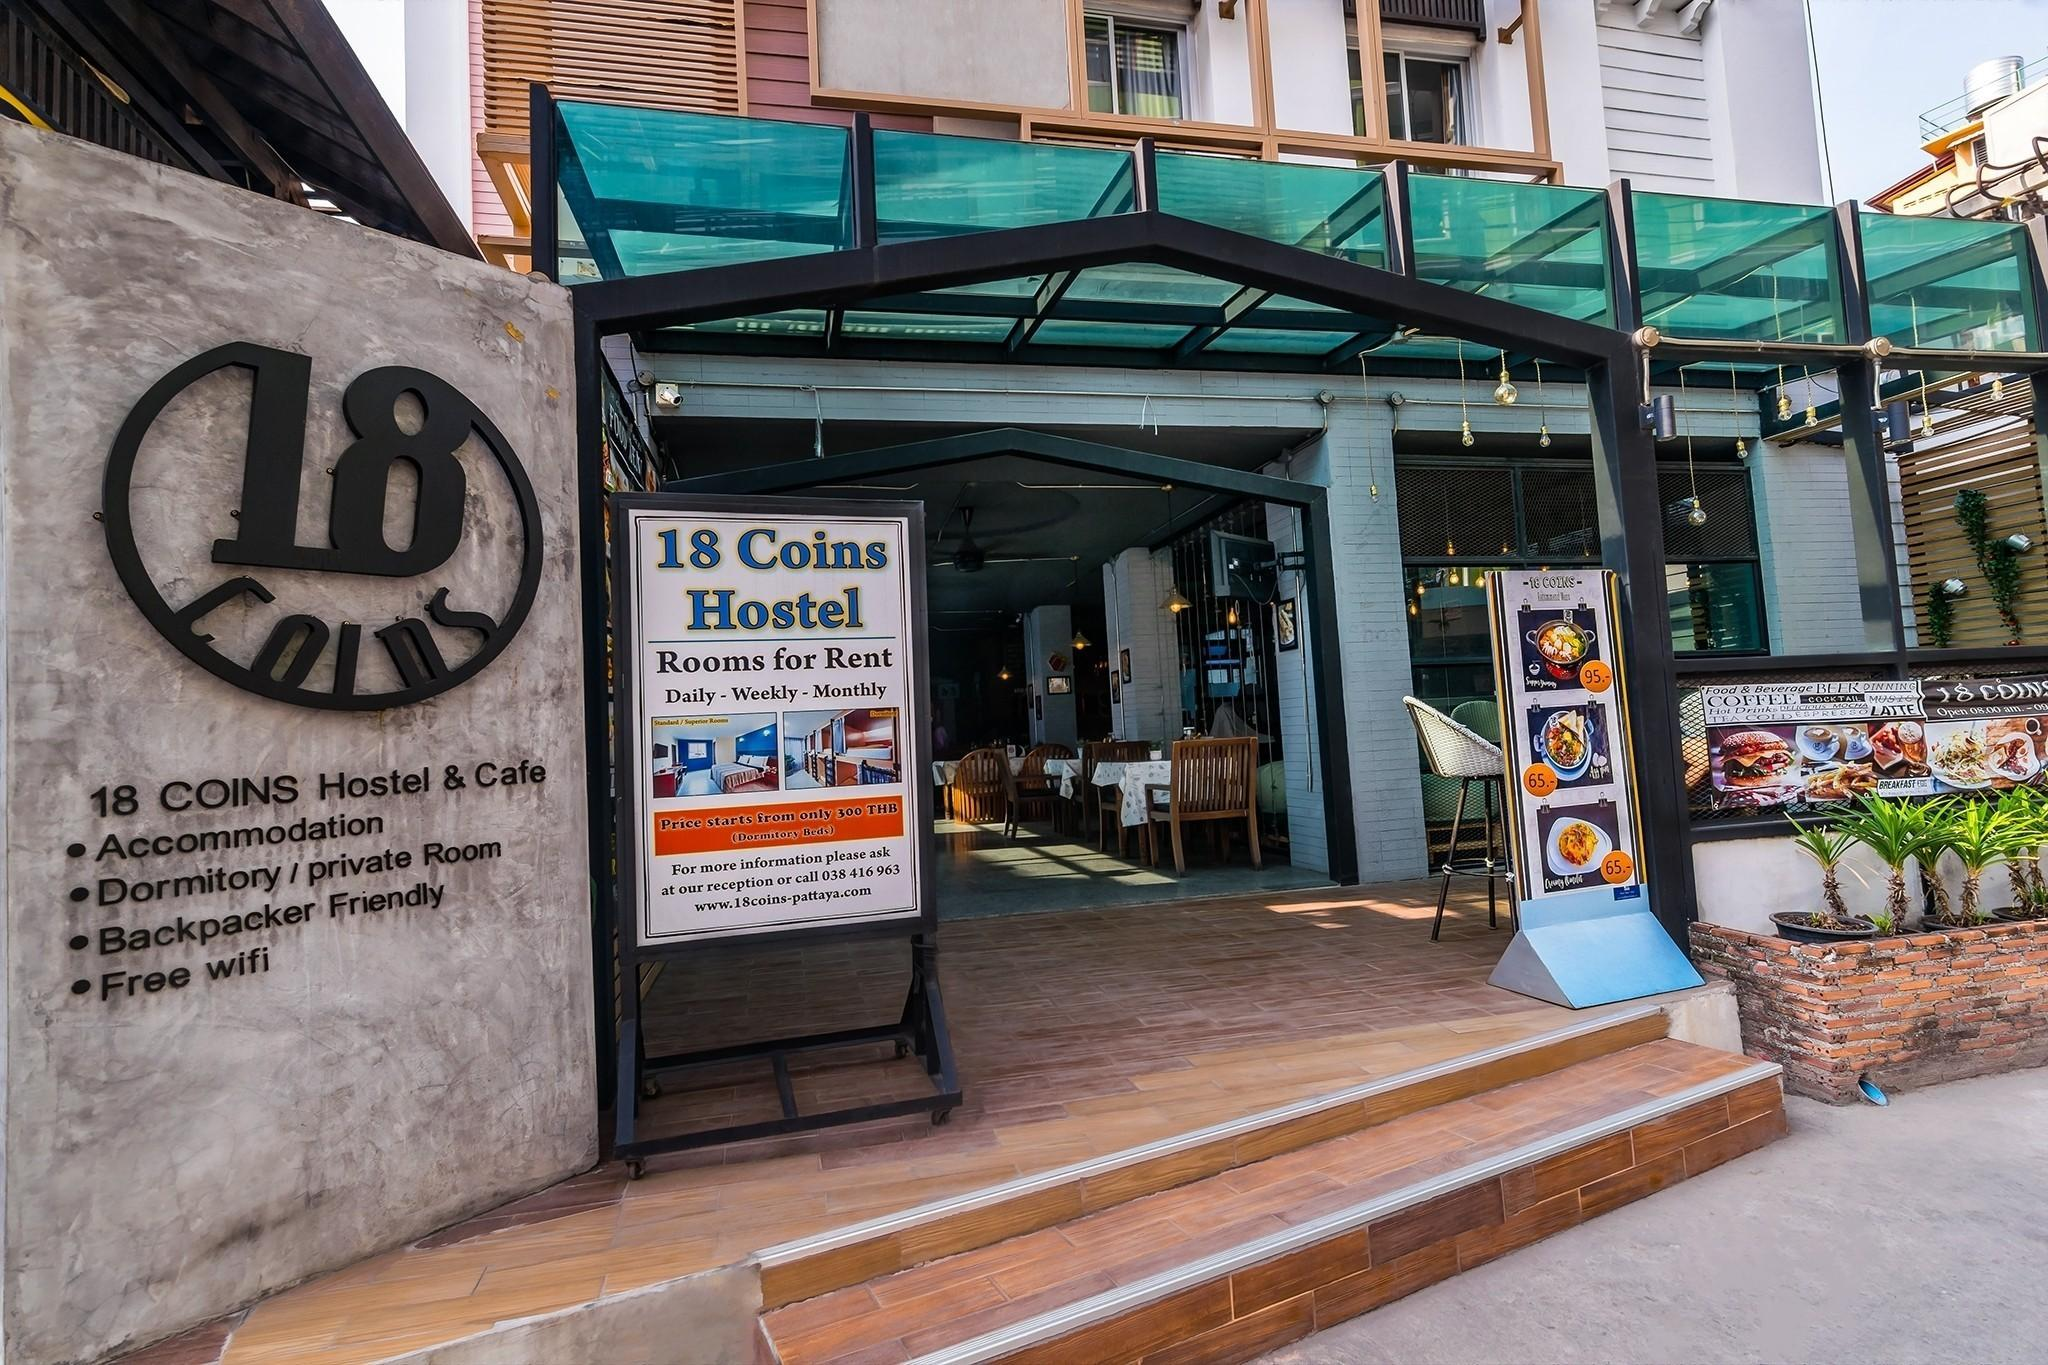 18 Coins Cafe & Hostel, Pattaya